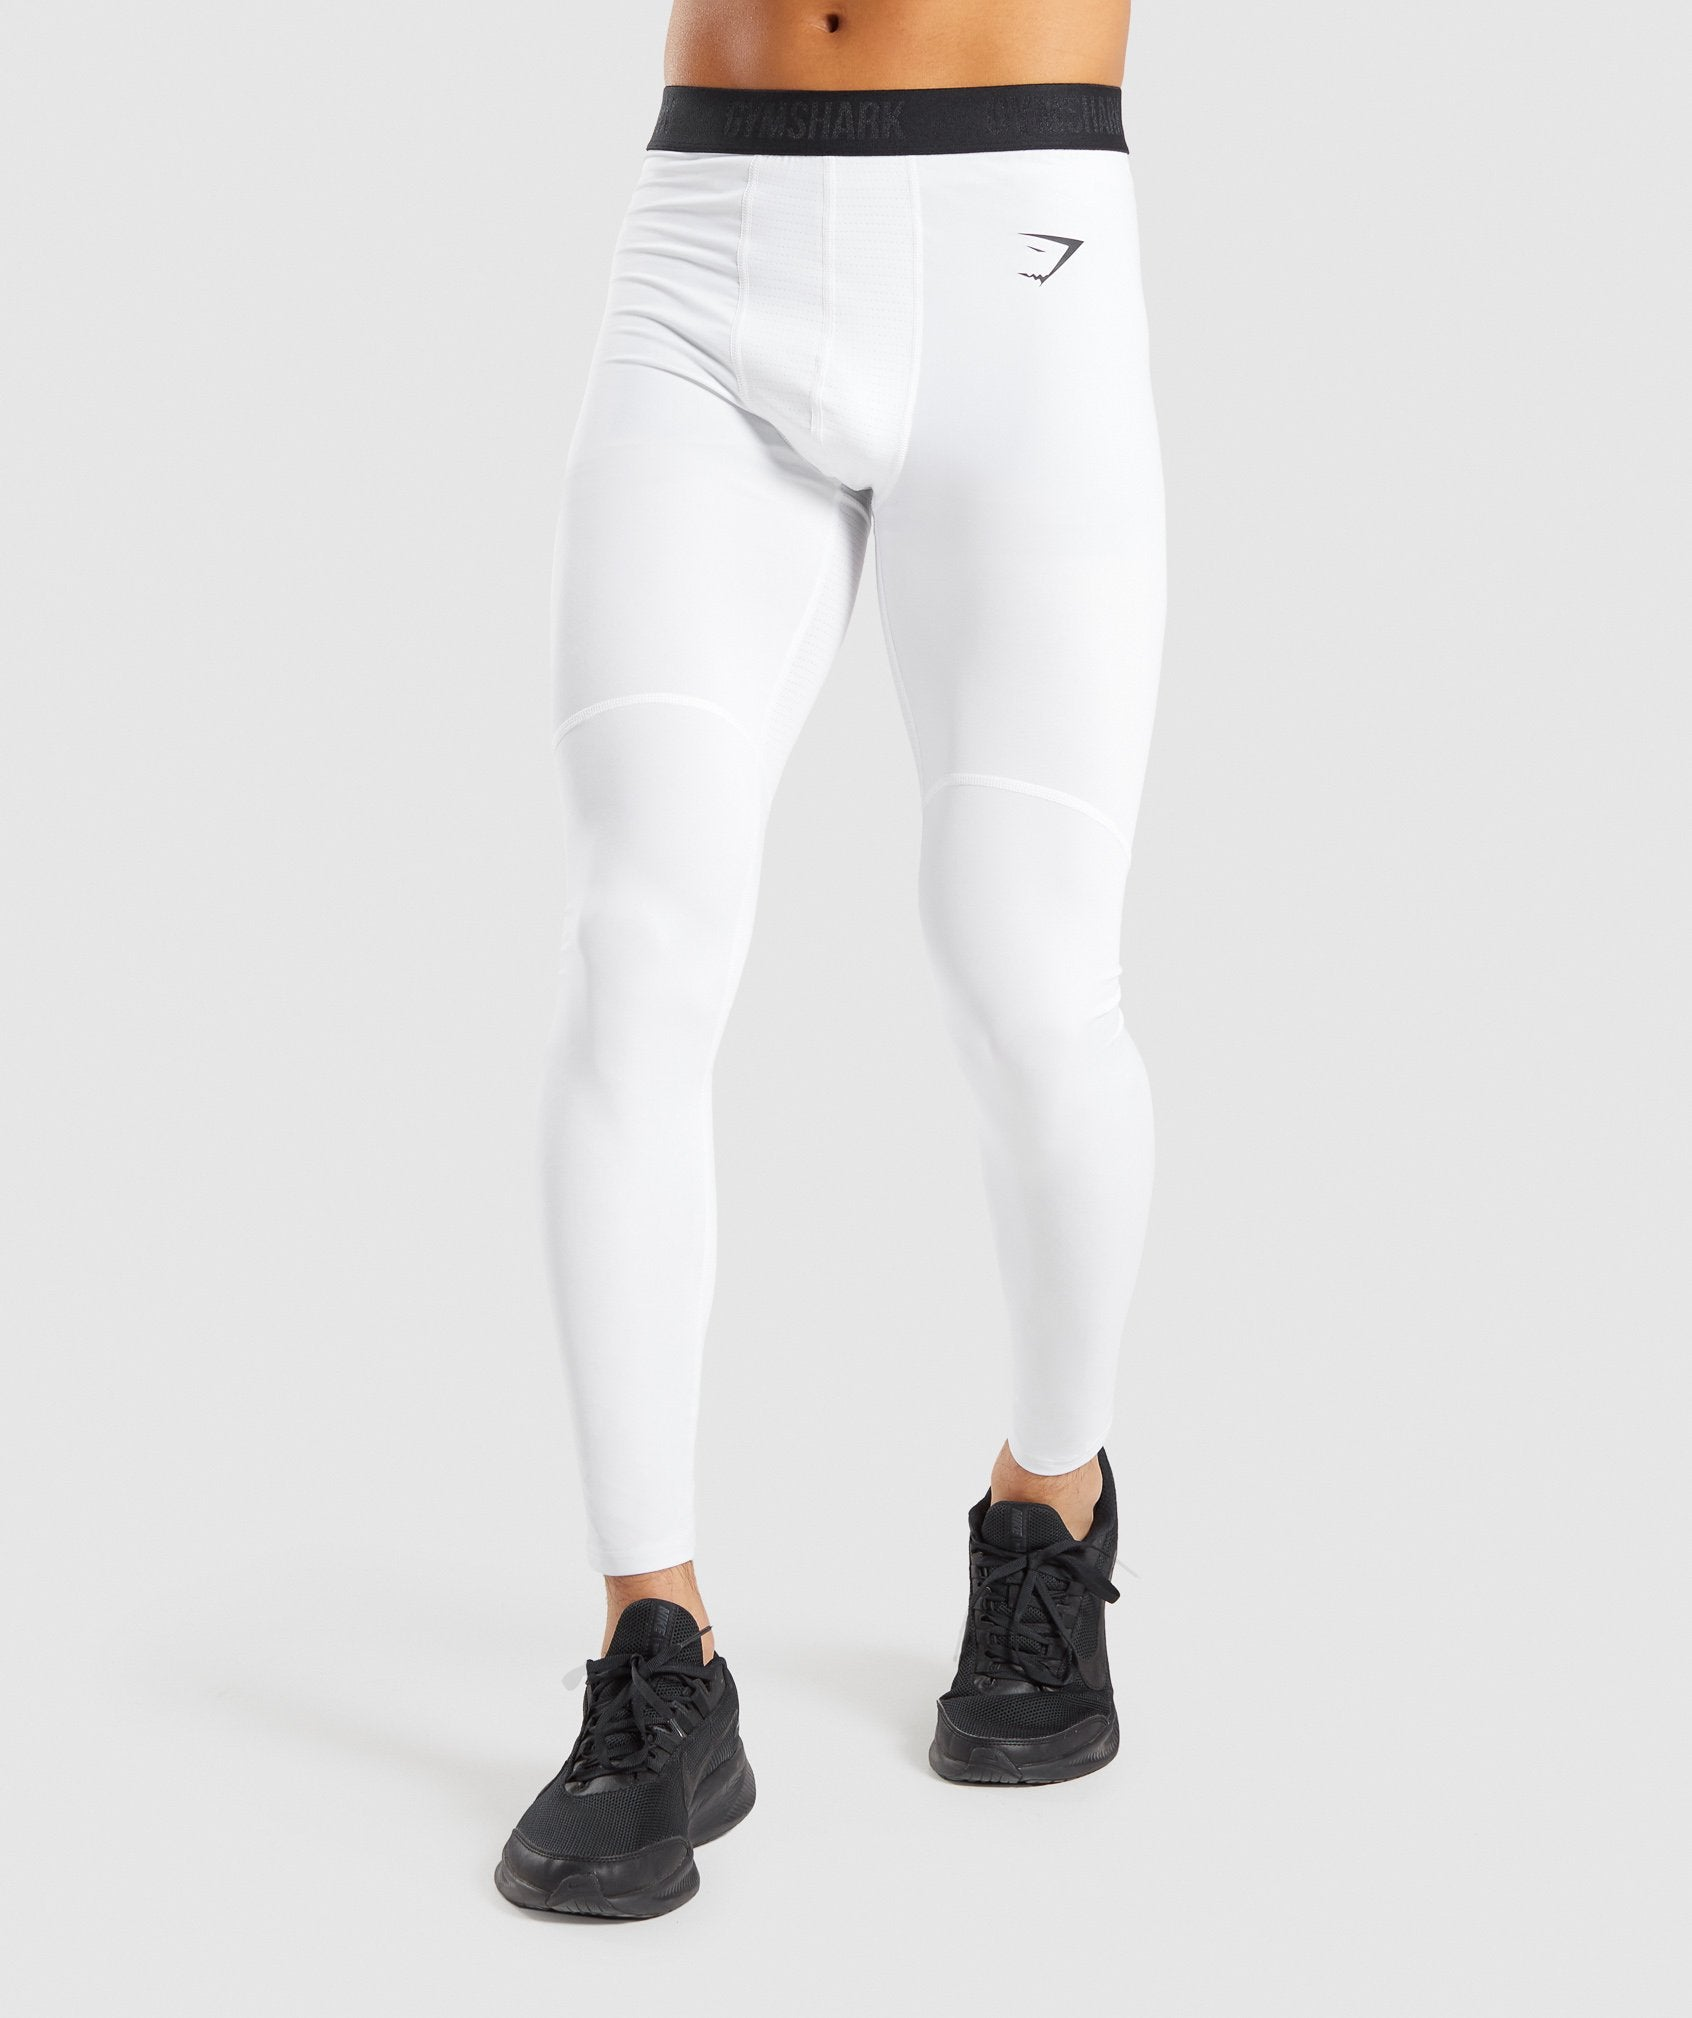 Classier: Buy Gymshark Element Baselayer Leggings - White - Gymshark